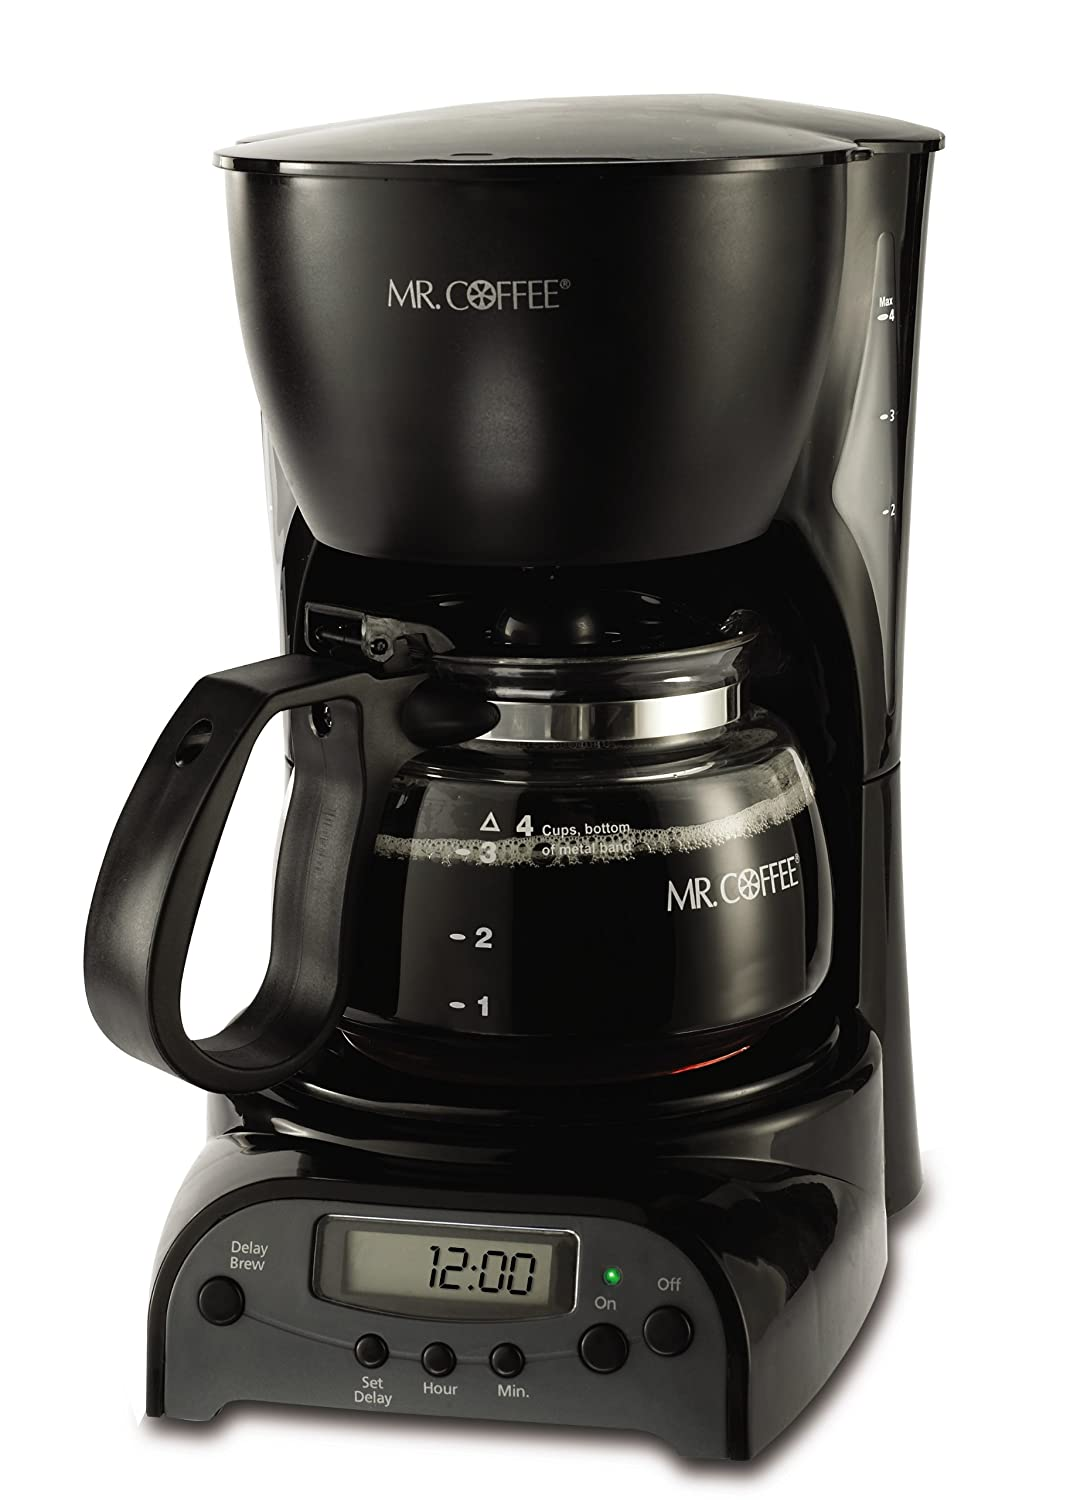 Mr Coffee Drx5 4 Cup Programmable Coffeemaker Coffee Maker: coffee maker brands